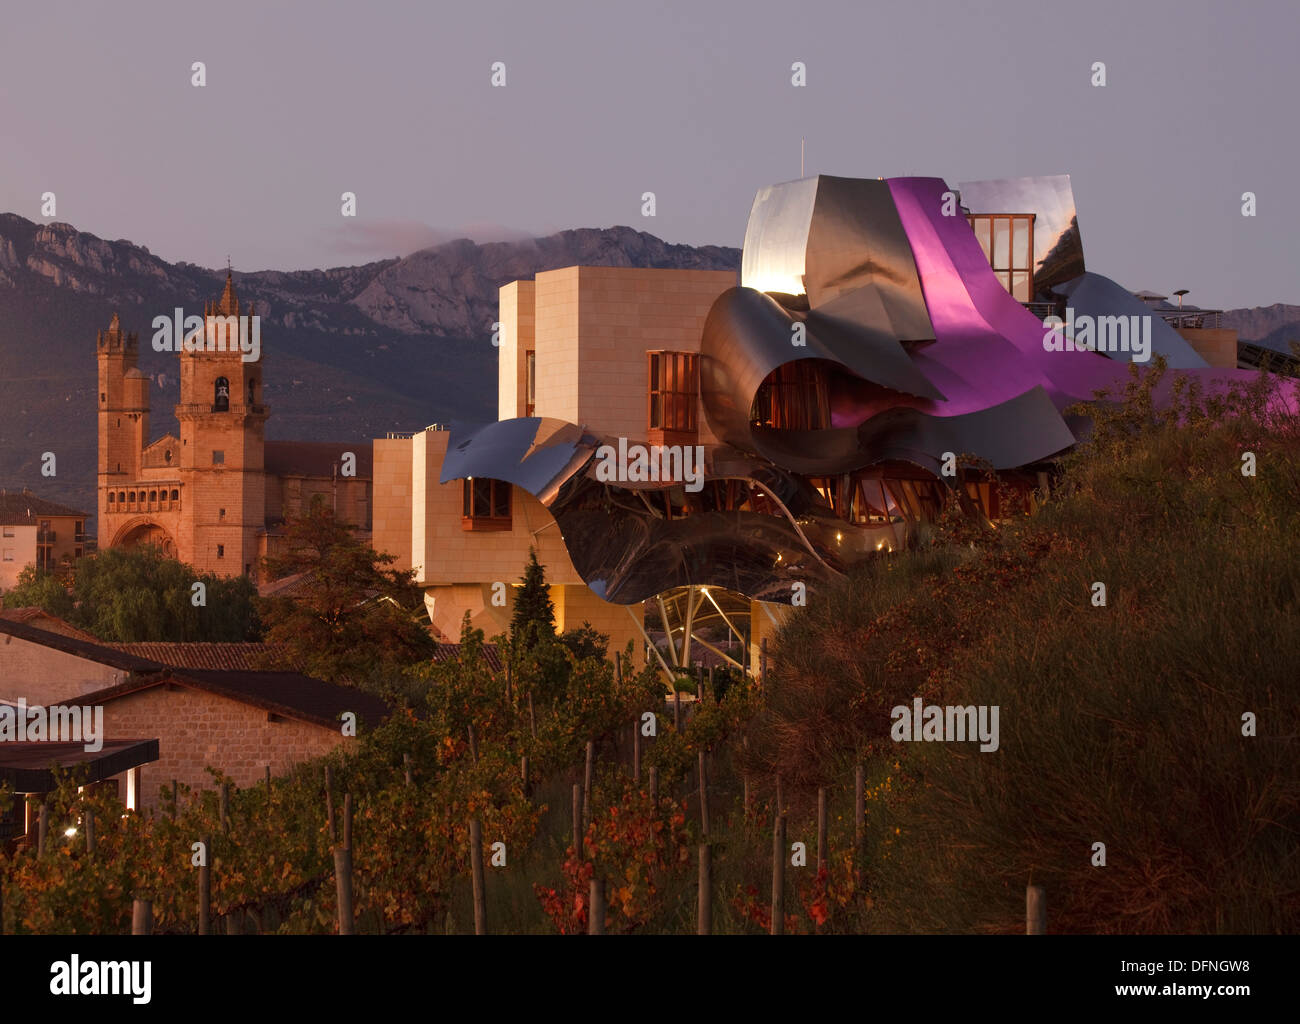 architect frank gehry stock photos architect frank gehry stock images alamy. Black Bedroom Furniture Sets. Home Design Ideas